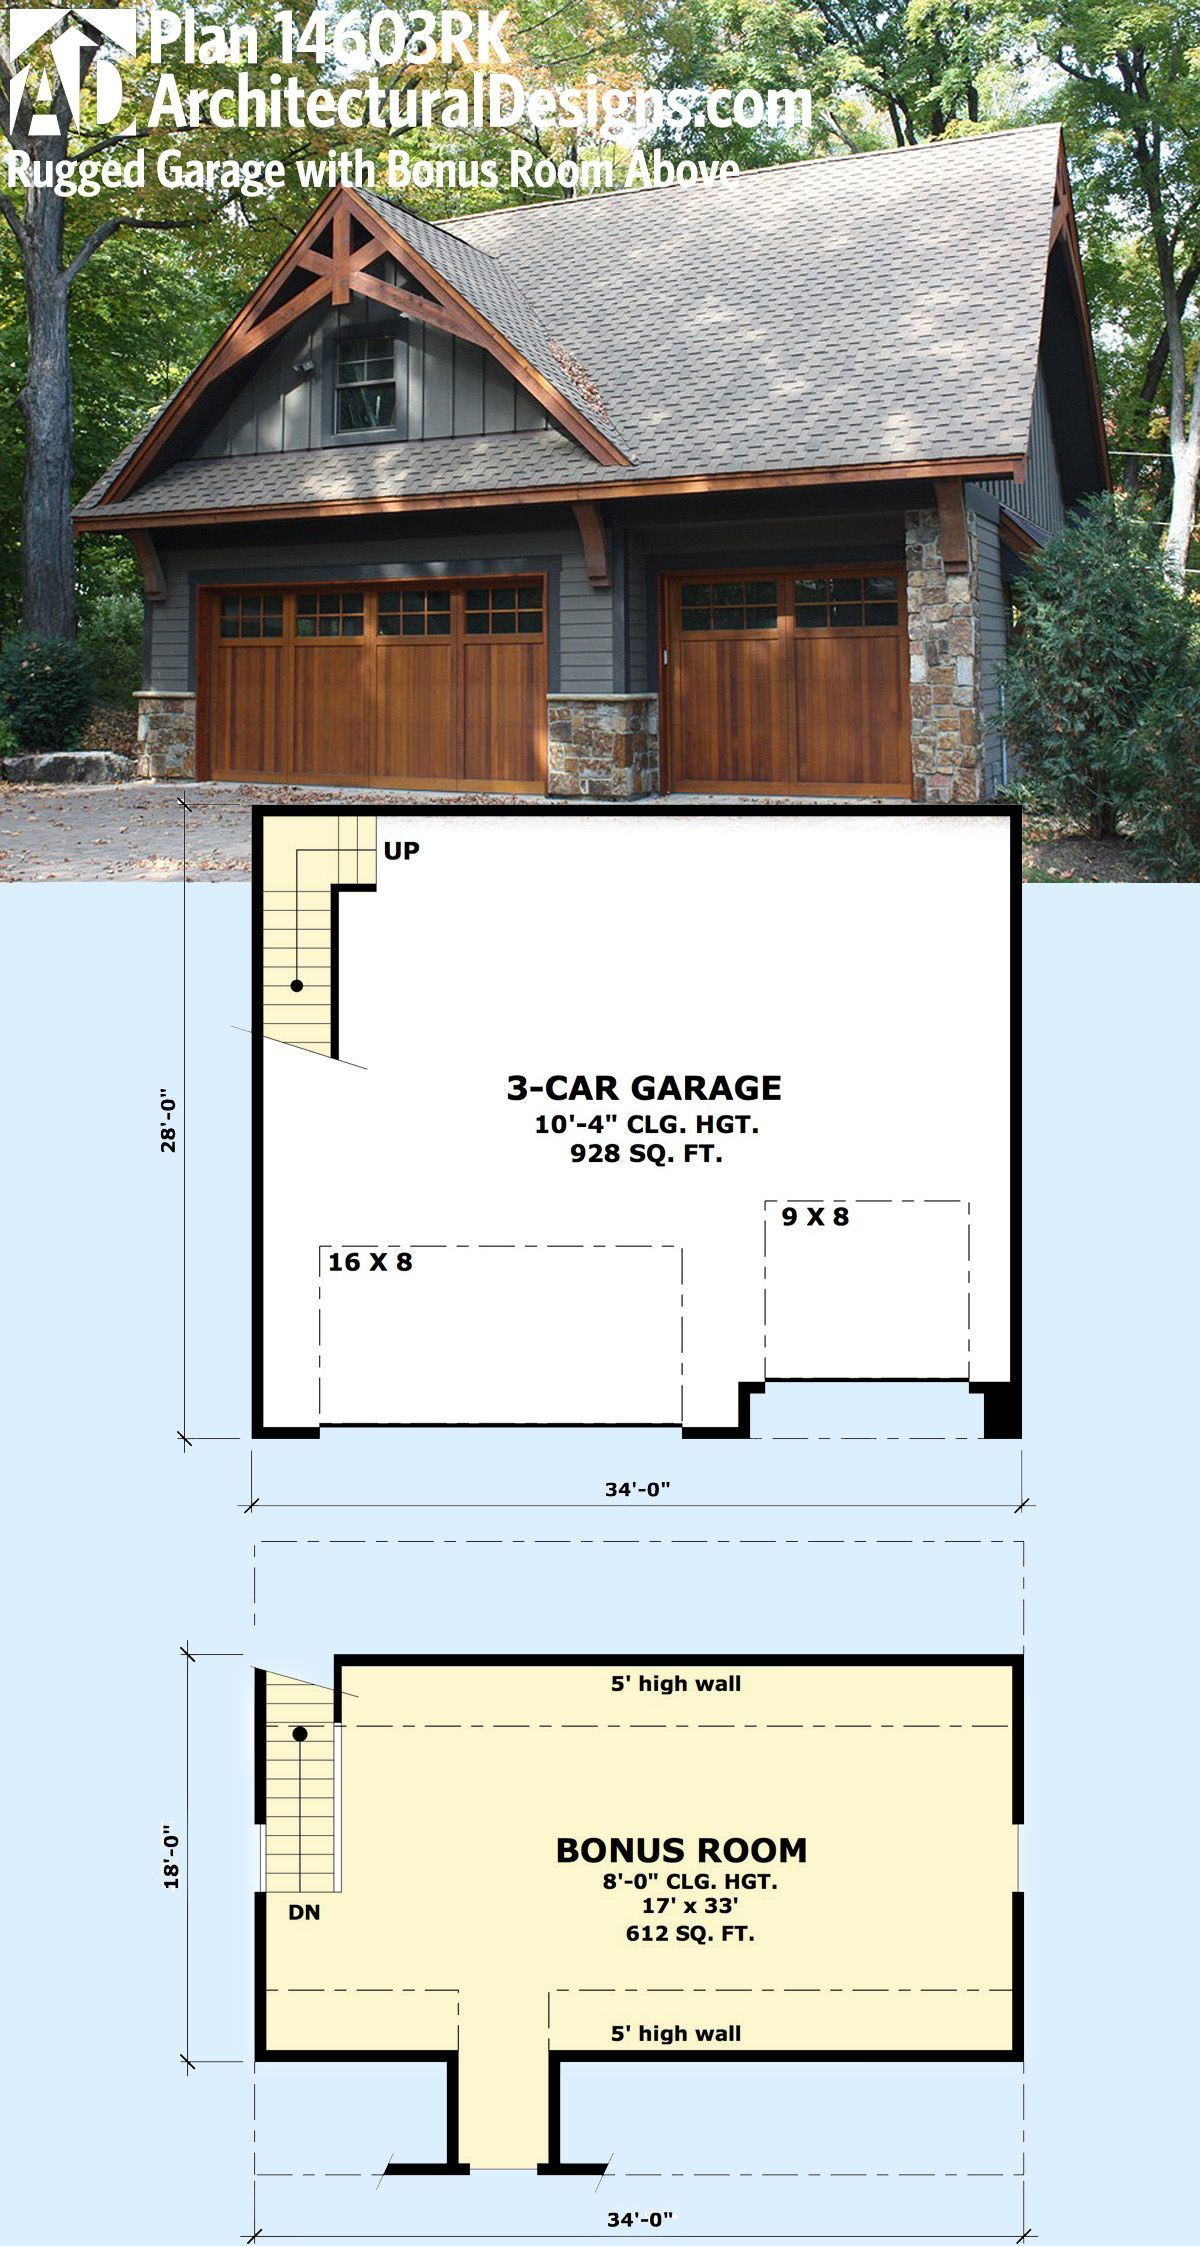 Plan 14630RK: Rugged Garage with Bonus Room Above #garageplans